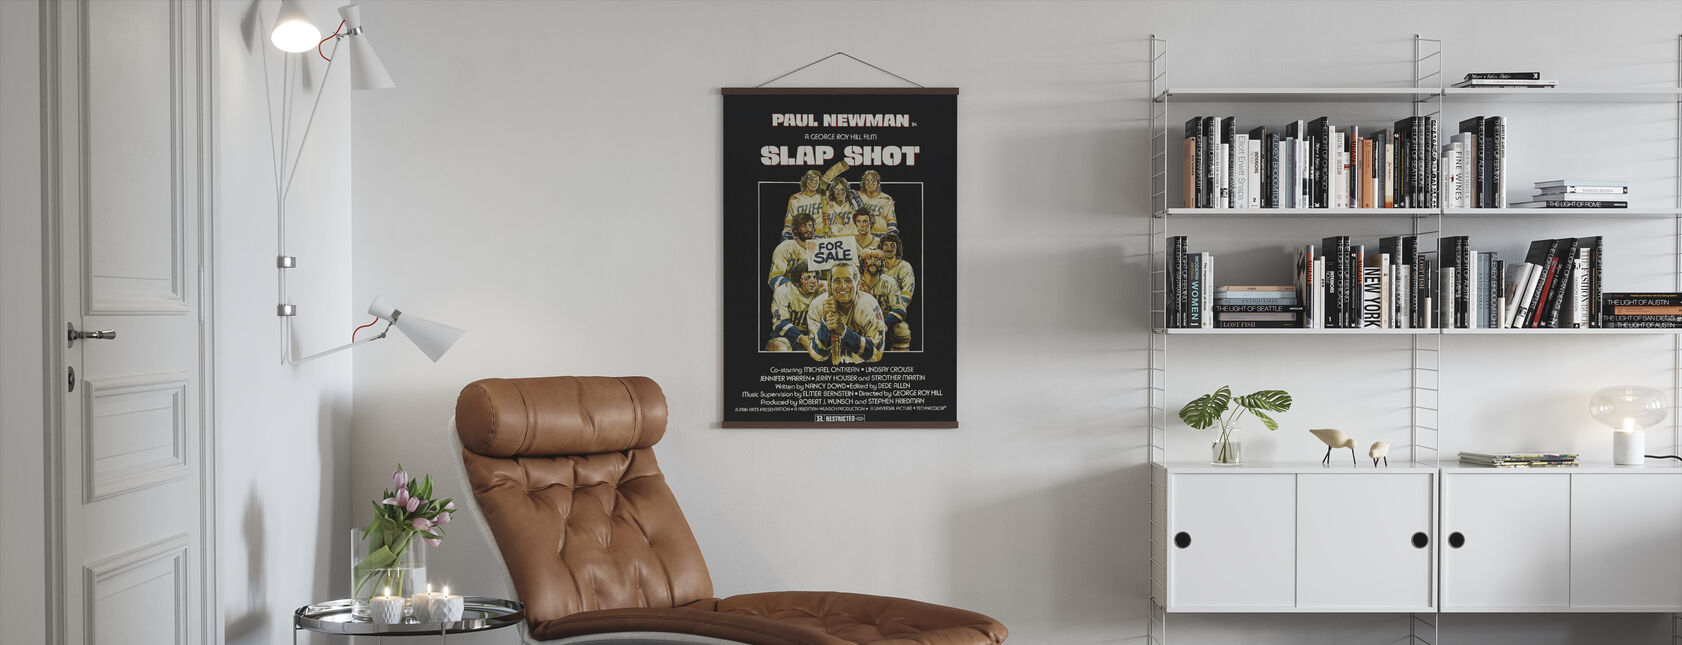 Slap Shot - Poster - Living Room